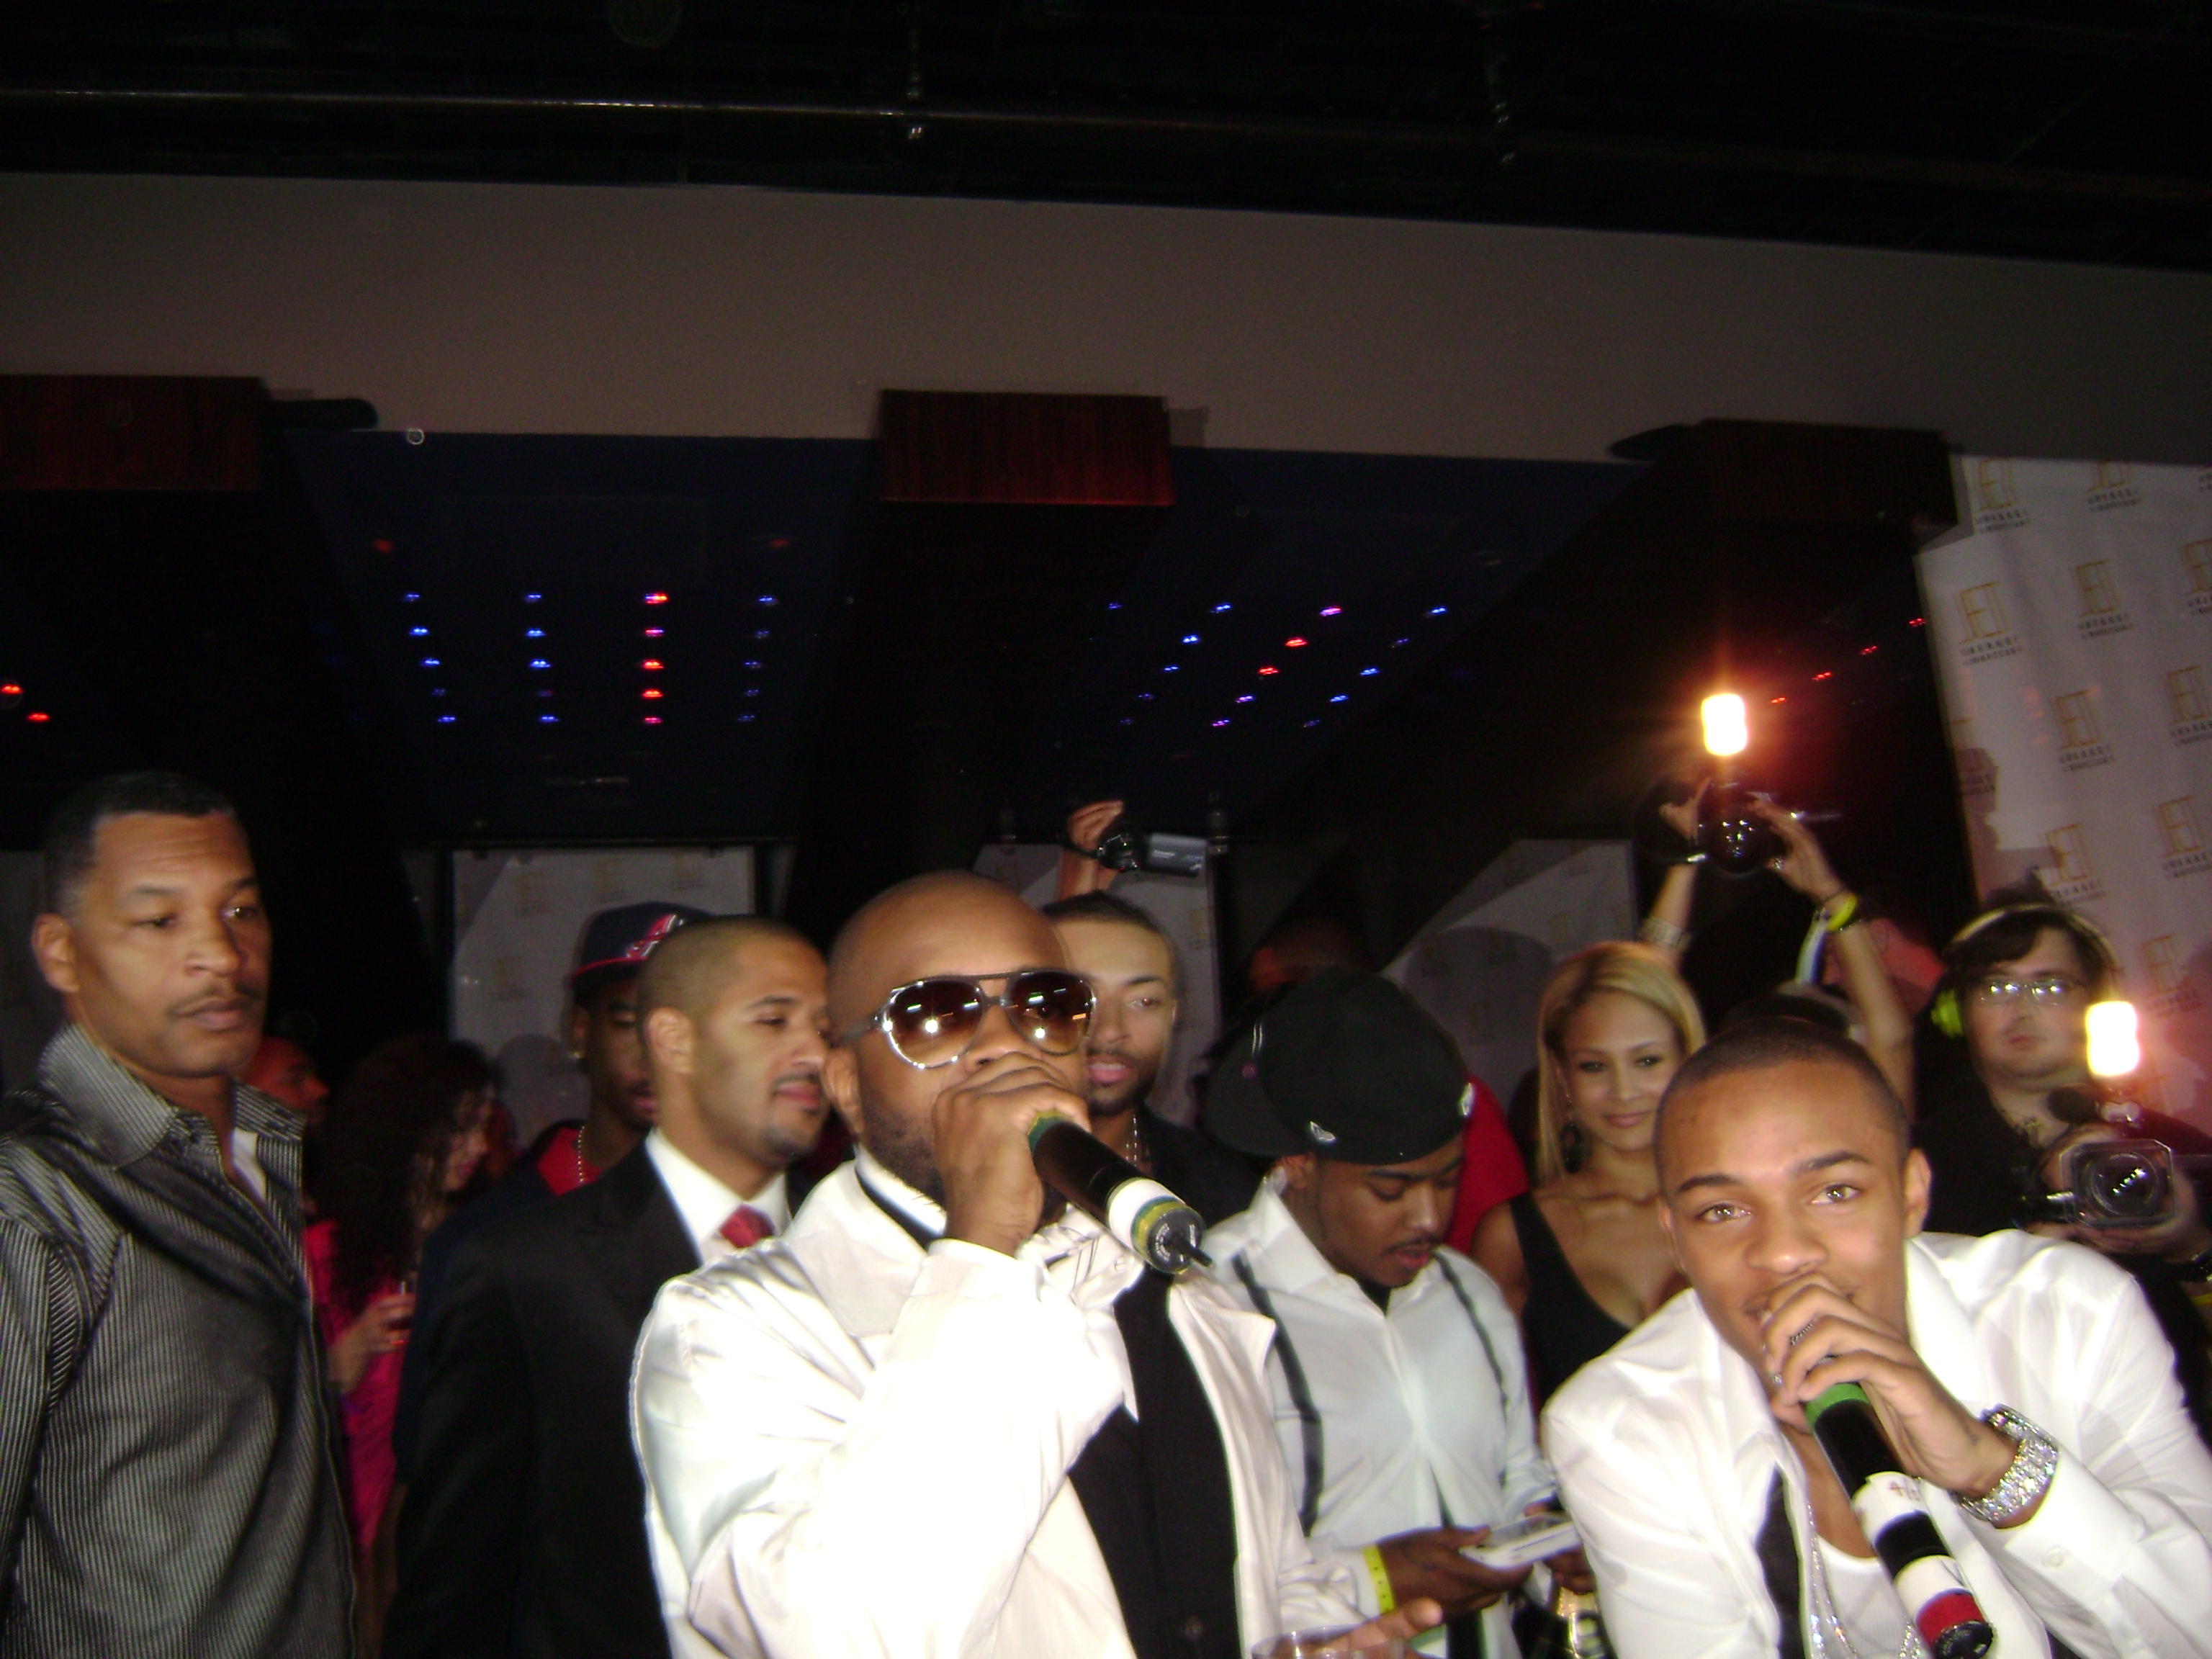 DJ Quick Djing In Las Vegas For Bow Wow's 21st B.D. With JD, Snoop, & Swiss Beats Pic 2